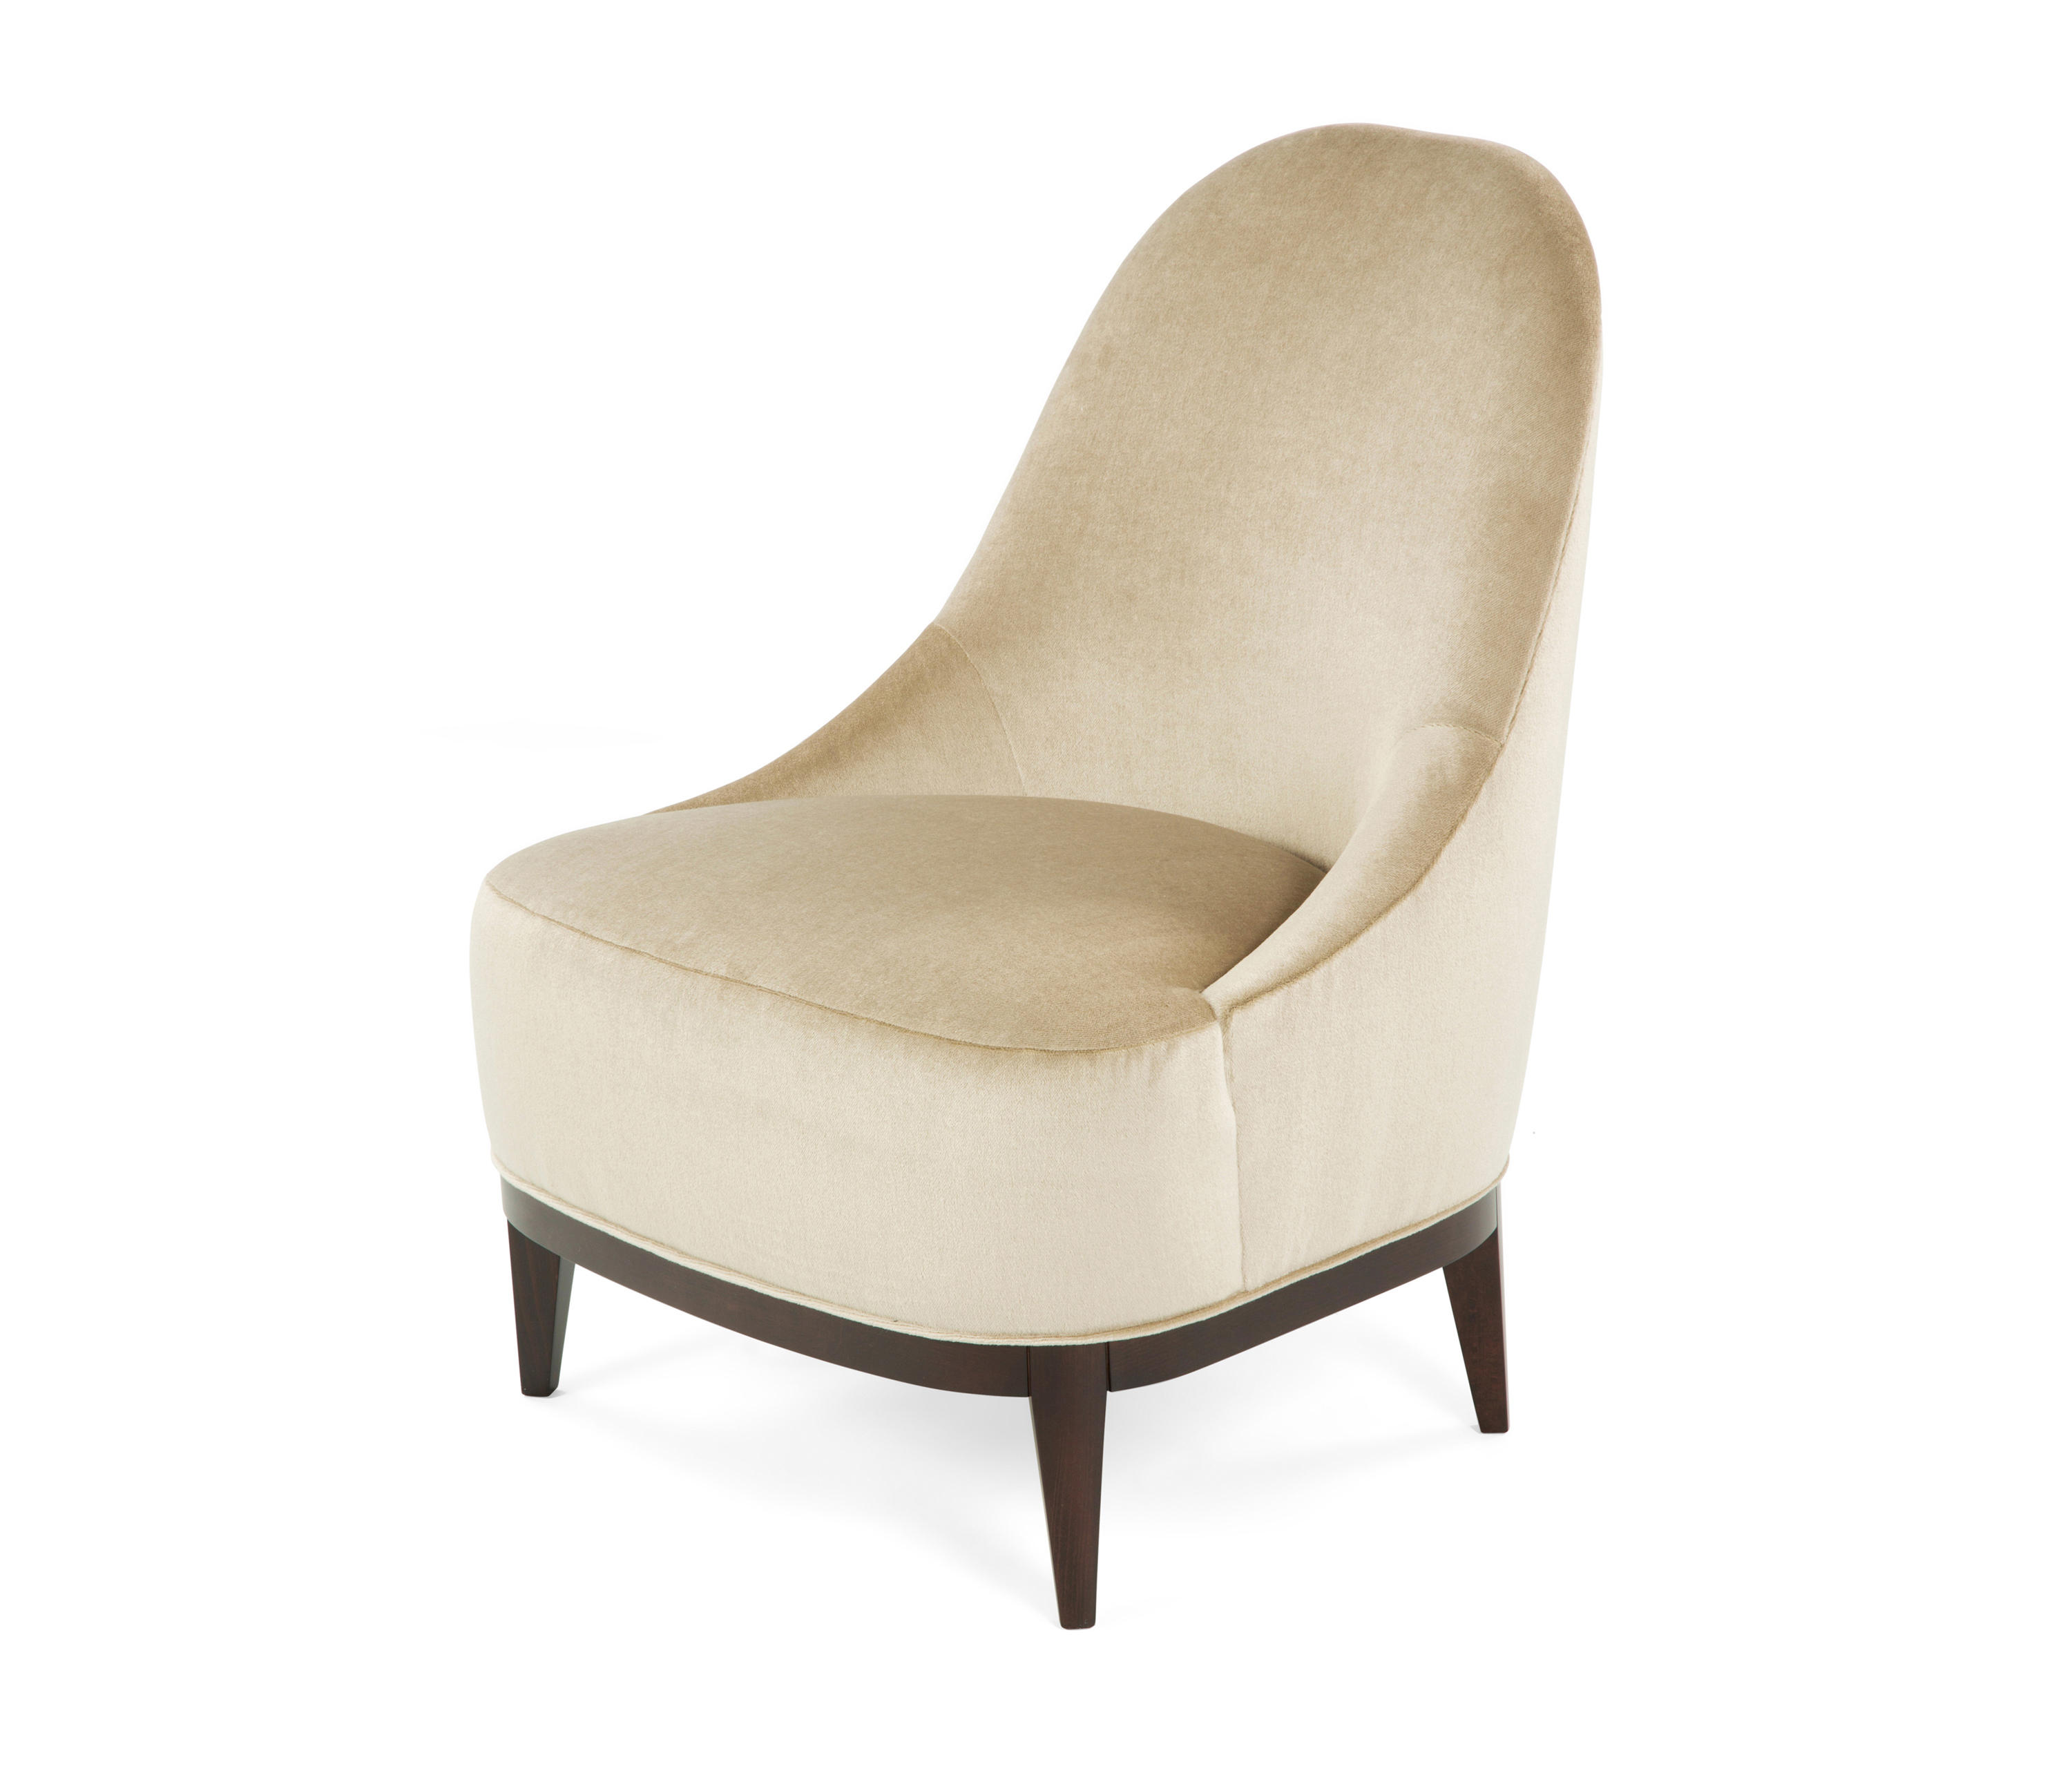 STANLEY OCCASIONAL CHAIR Lounge chairs from The Sofa & Chair